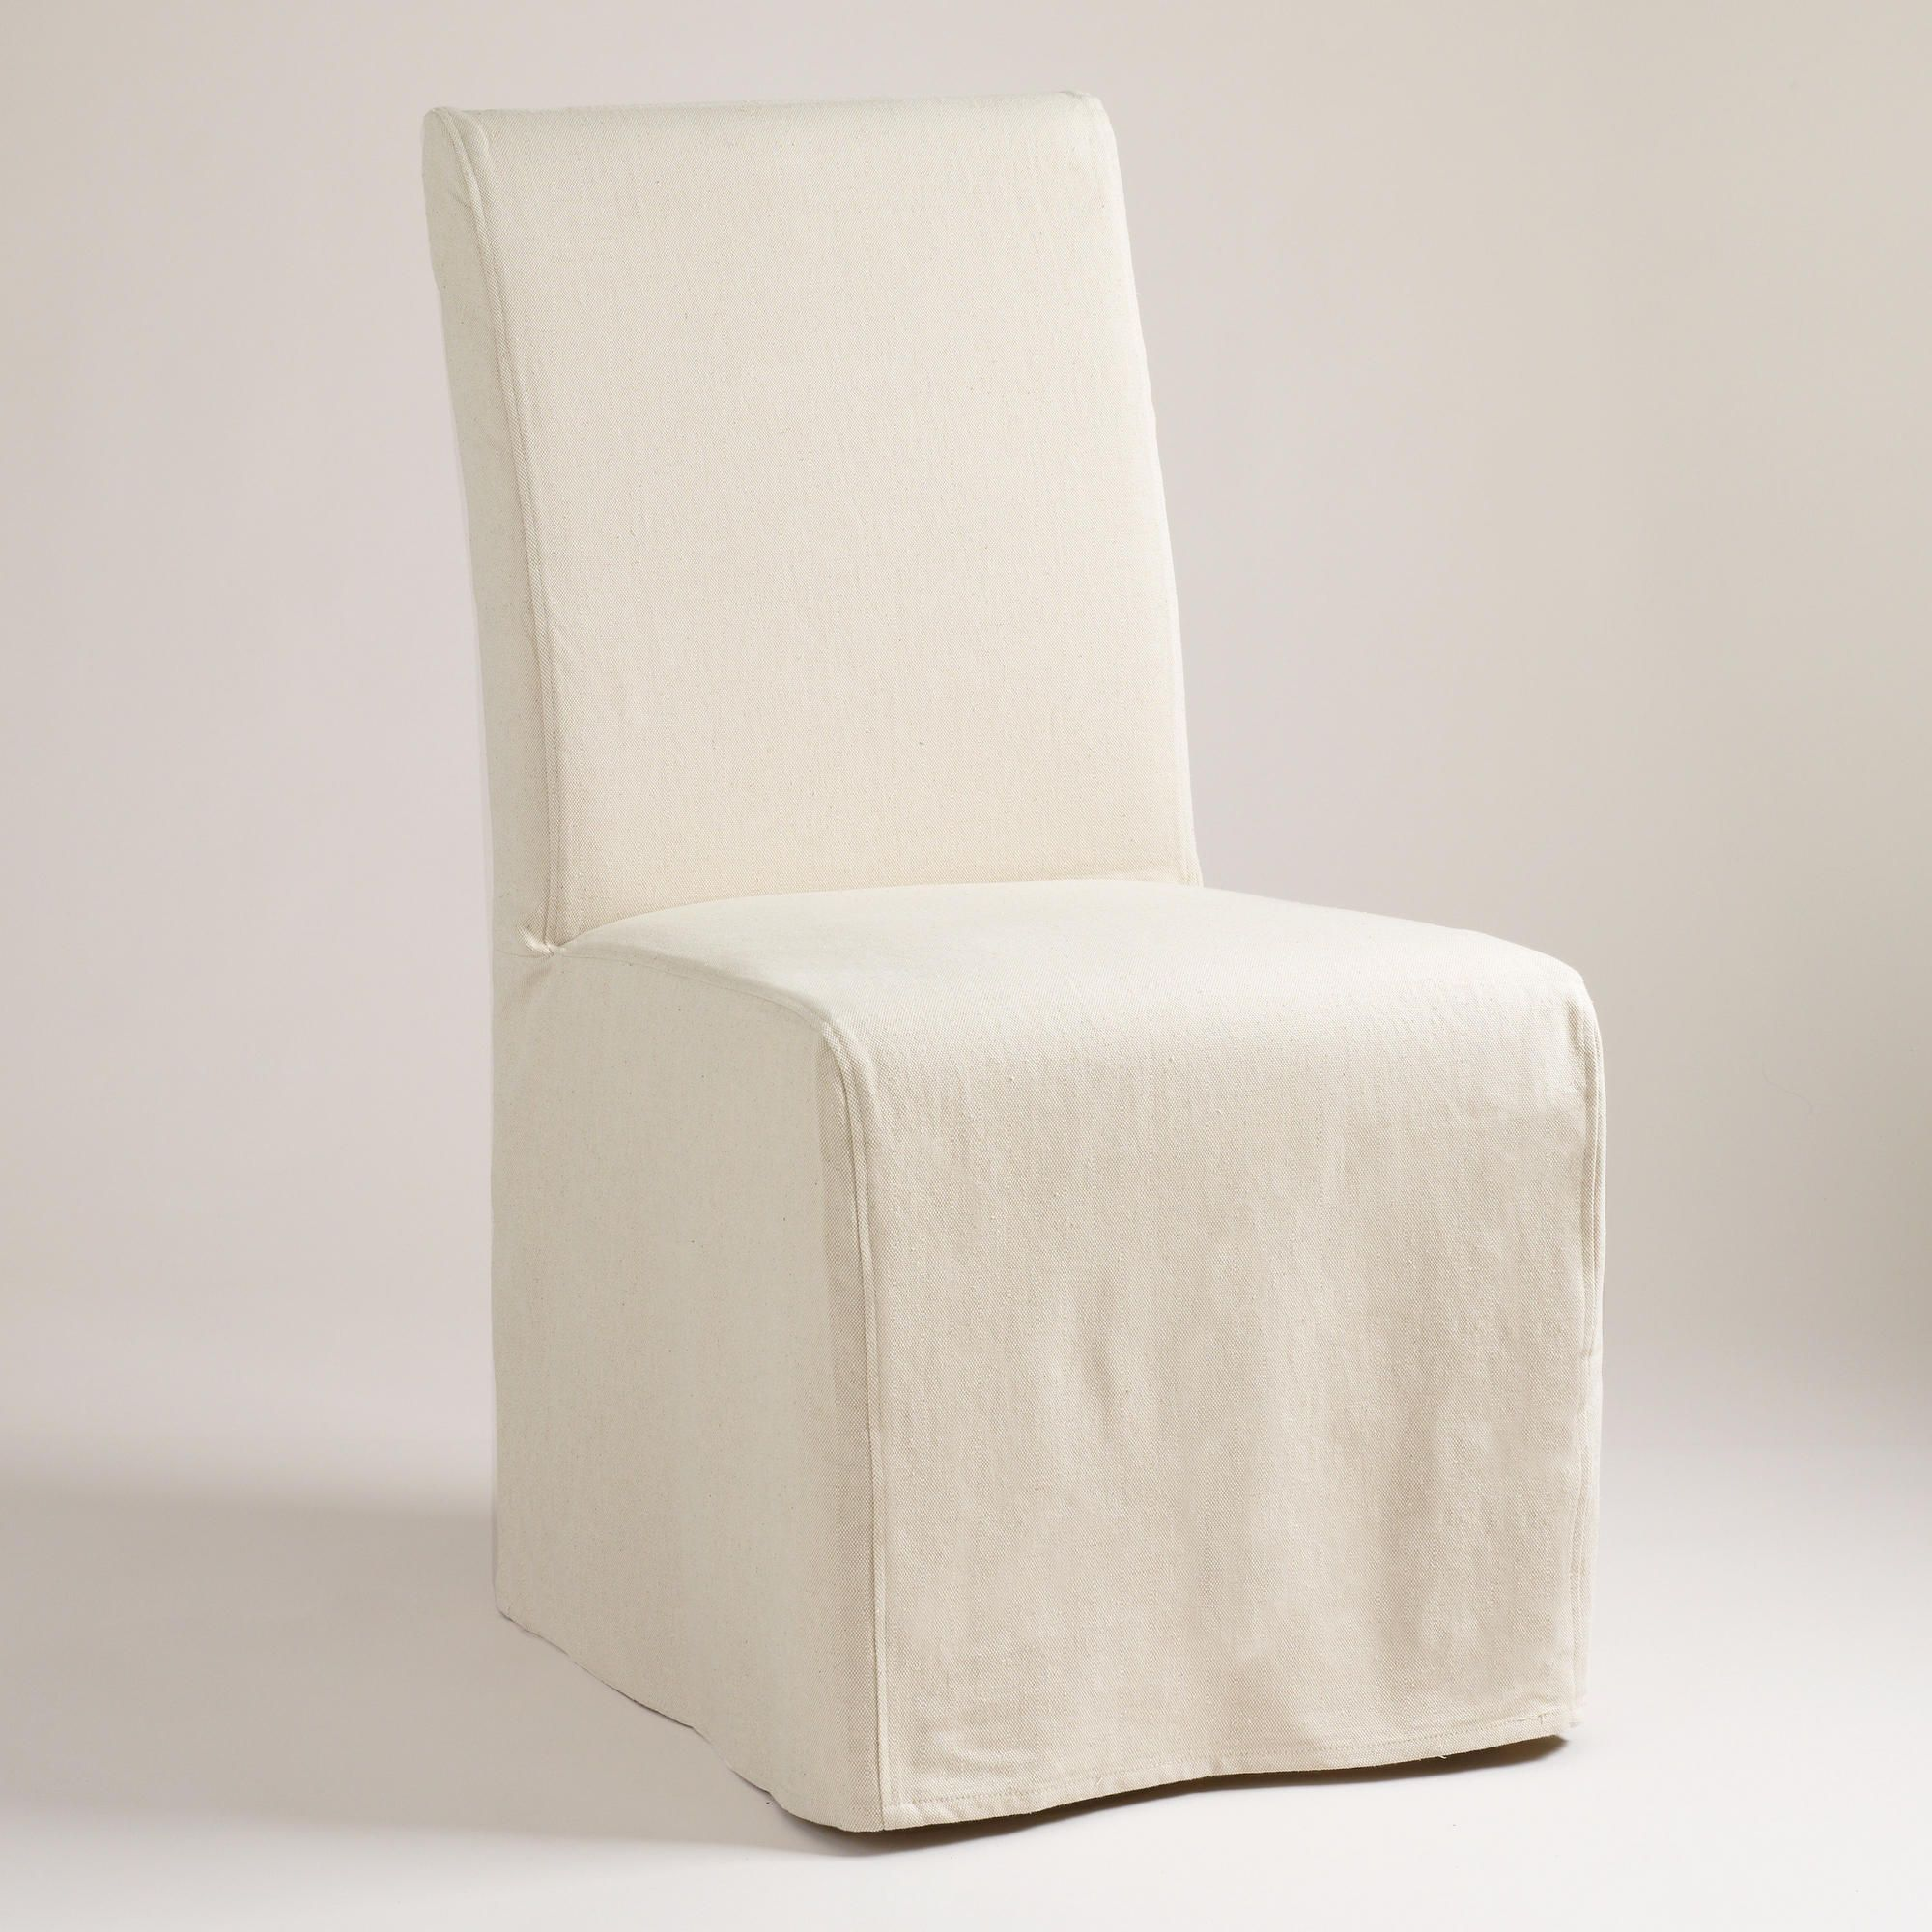 world market anna chair 2 accent chairs with slipcover linen long